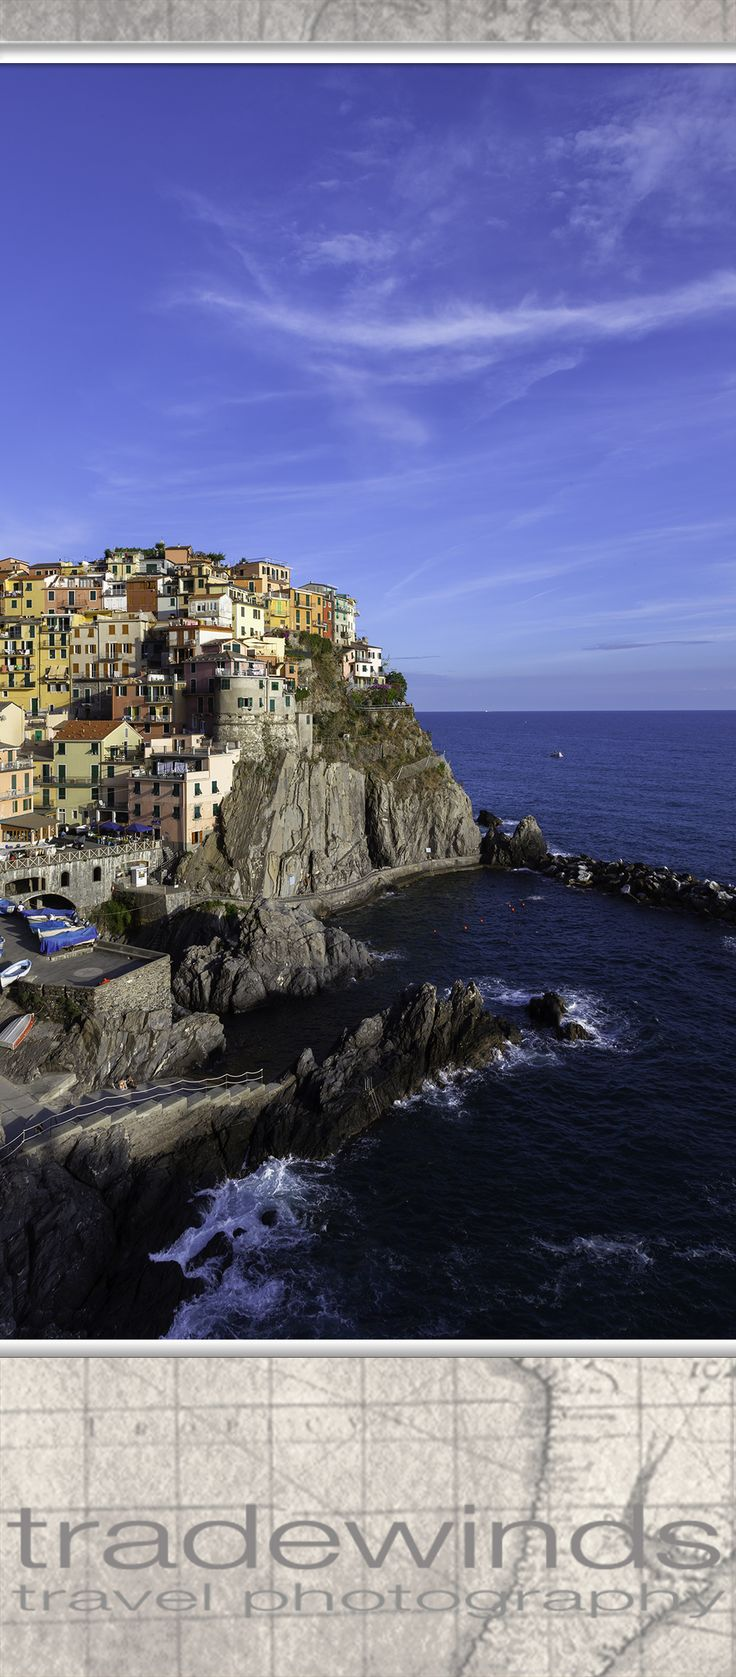 The town of Manarola in the famous Cinque Terre national park on the Italian riviera.